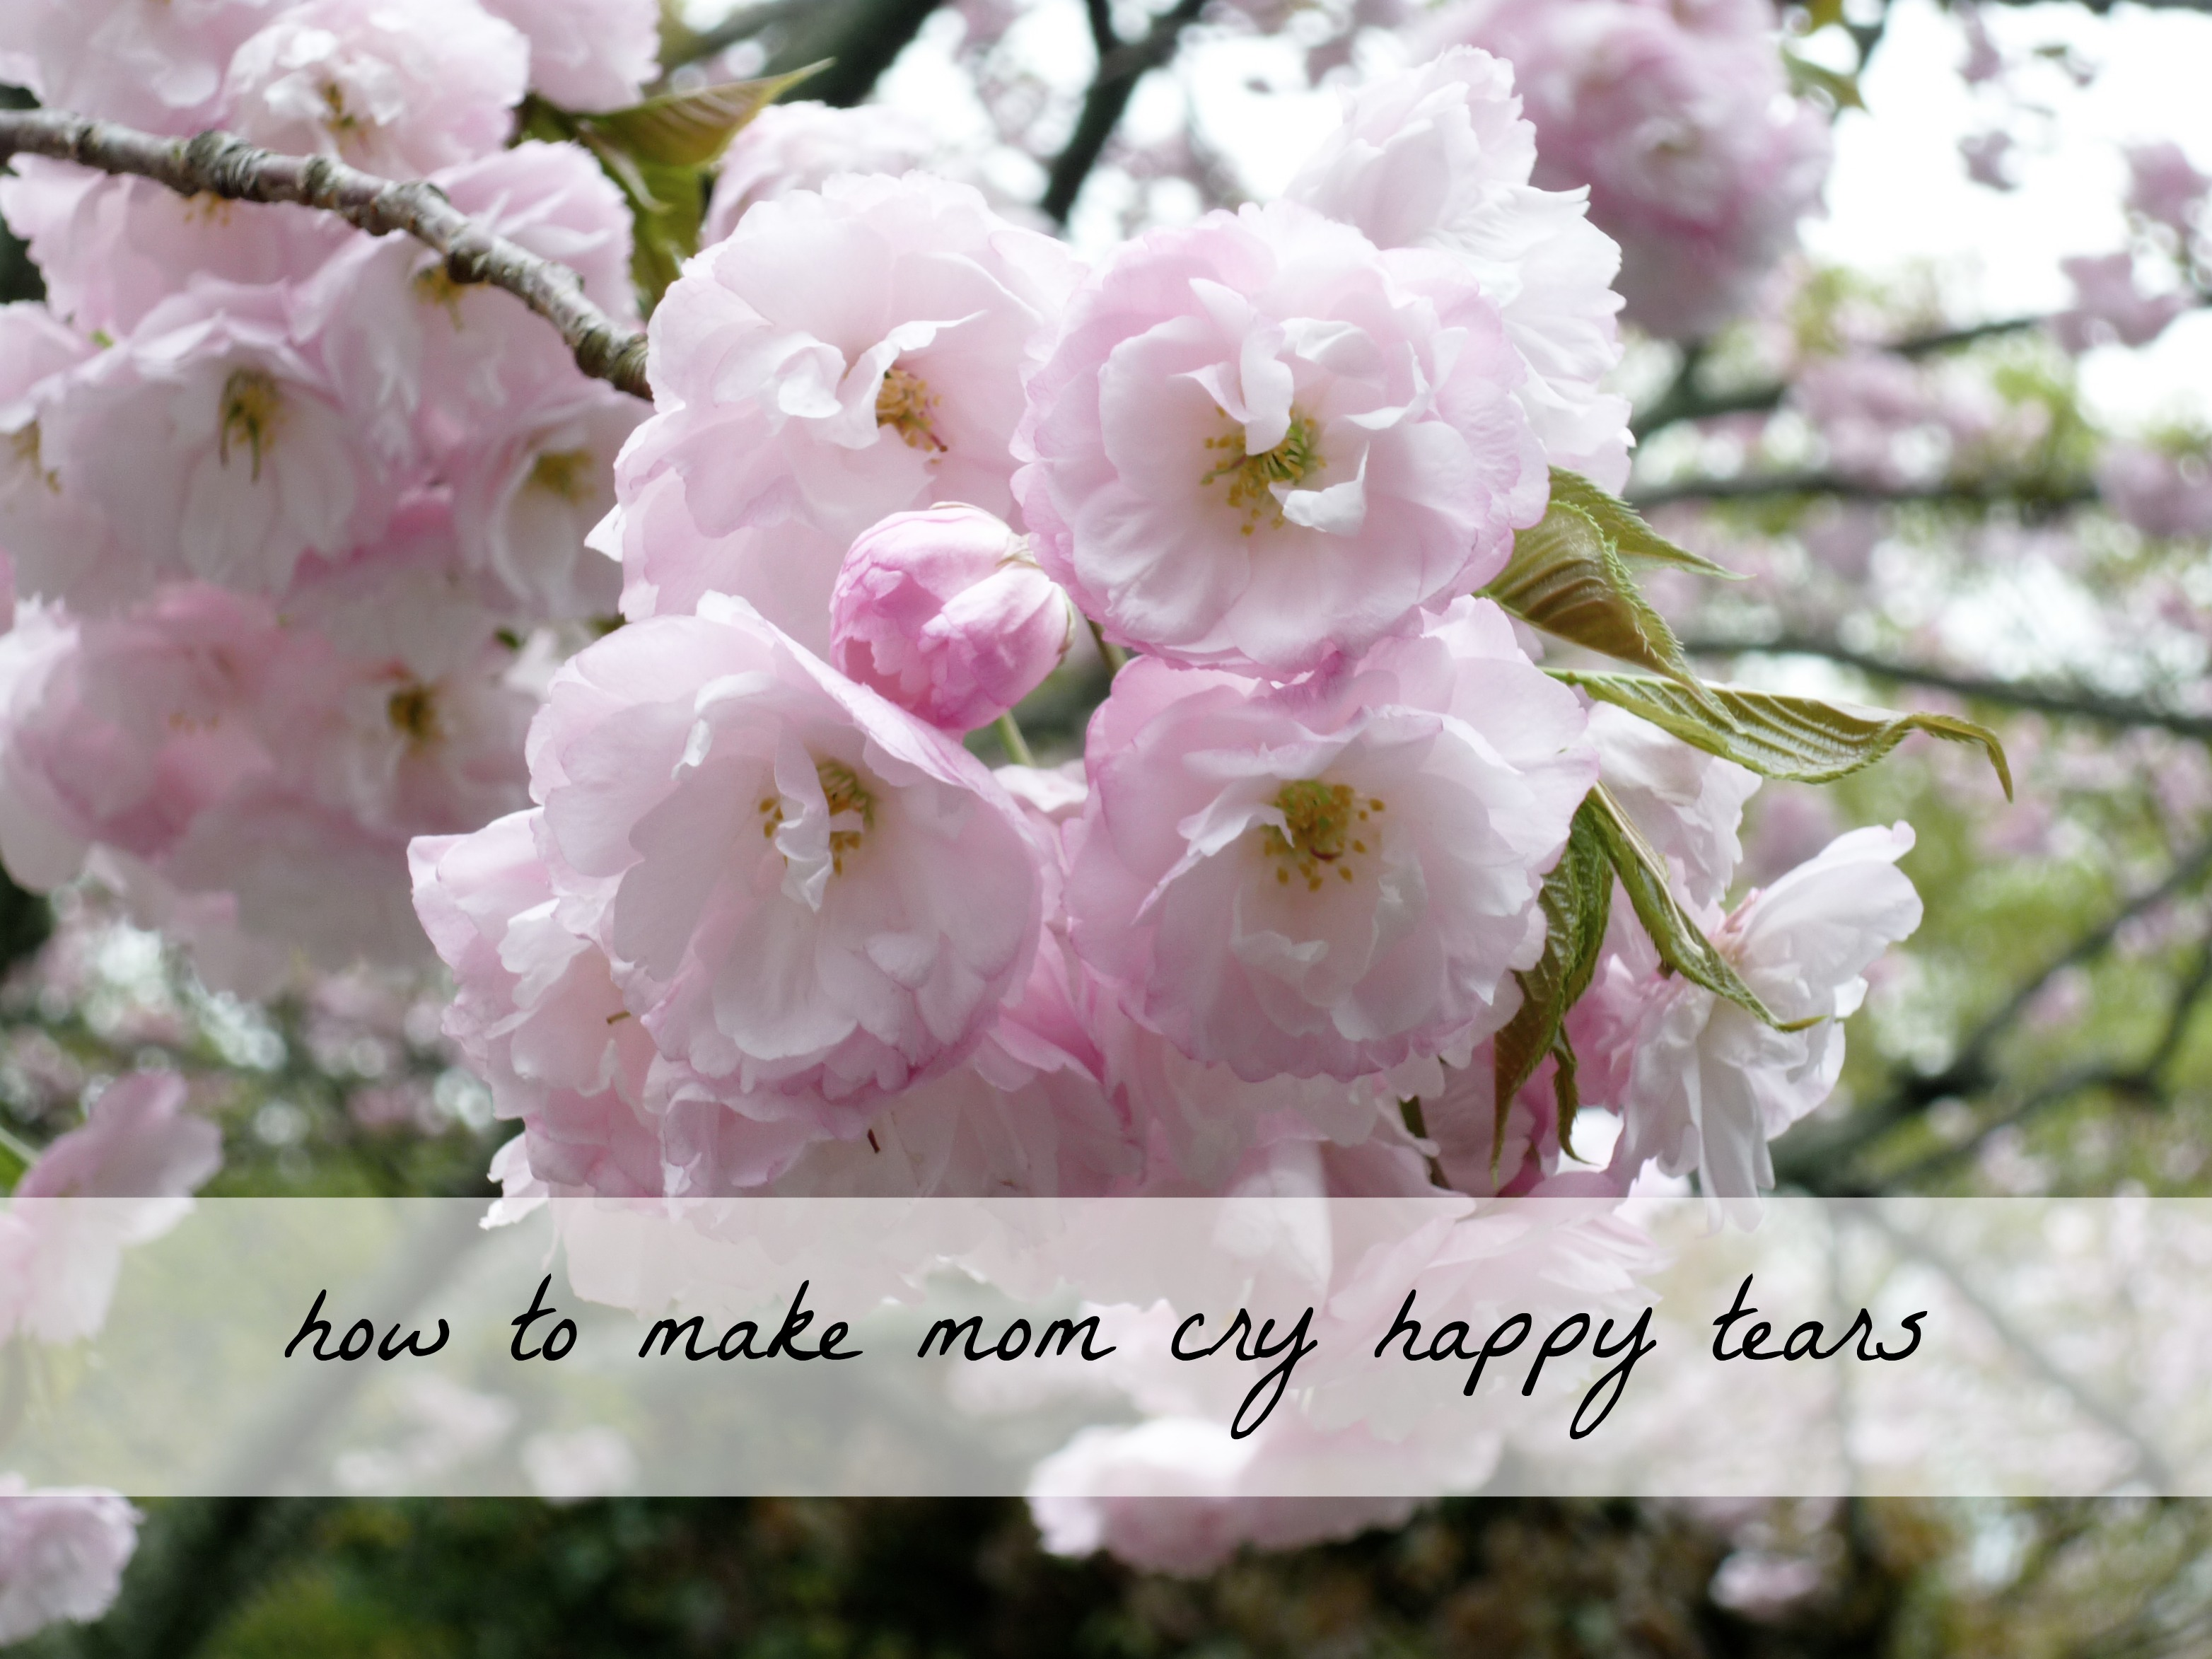 Mother's Day gift ideas that are so thoughtful, you'll have mom crying happy tears. Most of these ideas are inexpensive or even free.